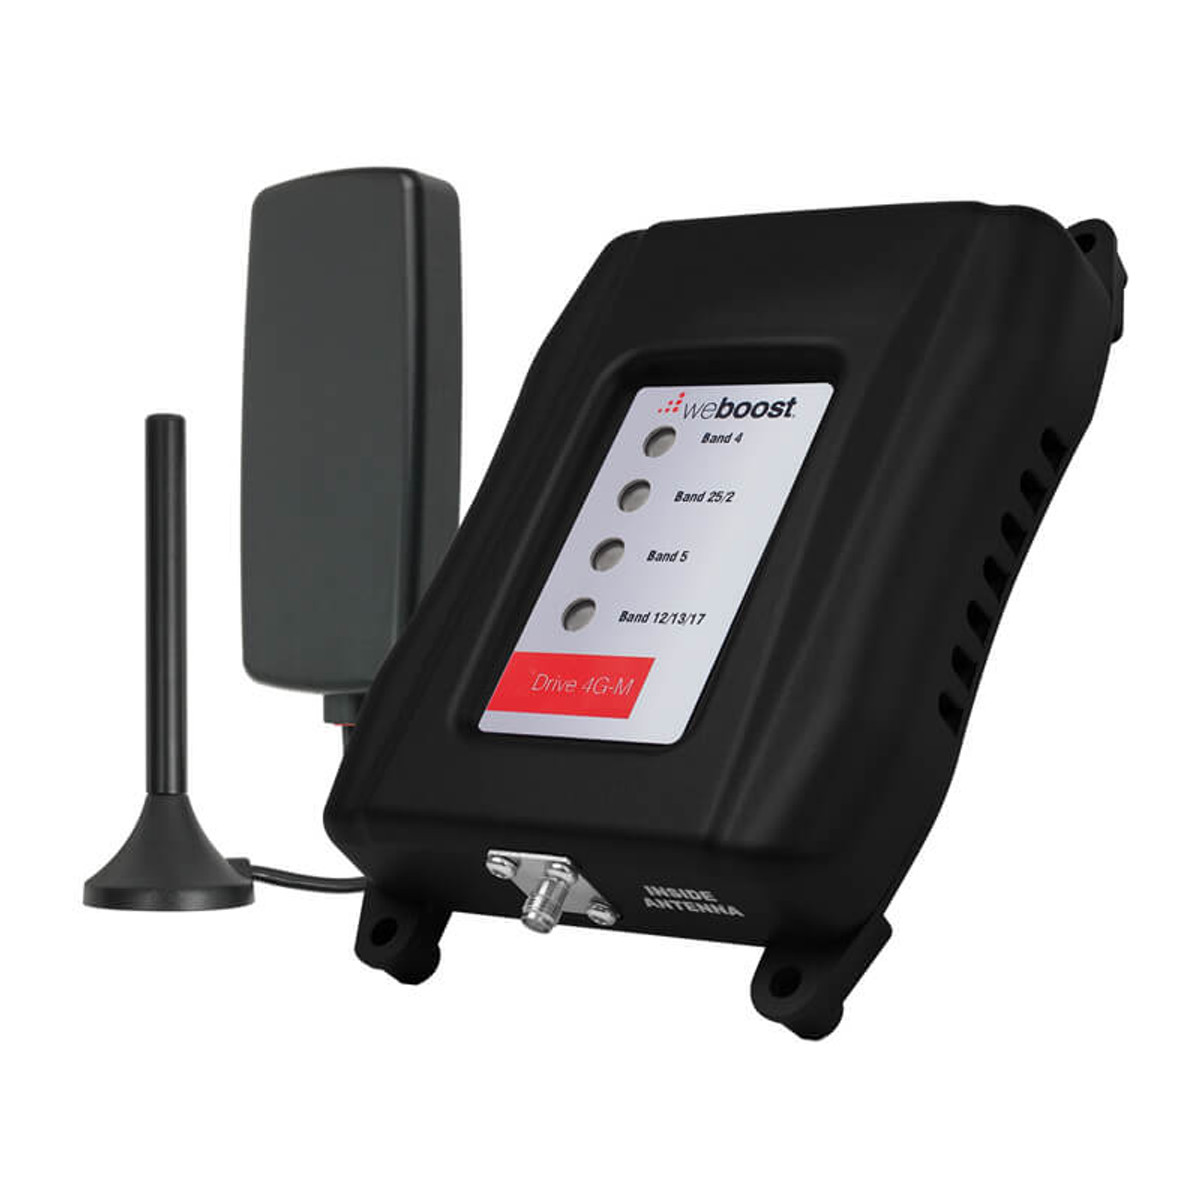 weBoost Drive 4G-M Cell Phone Signal Booster   470121 (Formerly 470108)